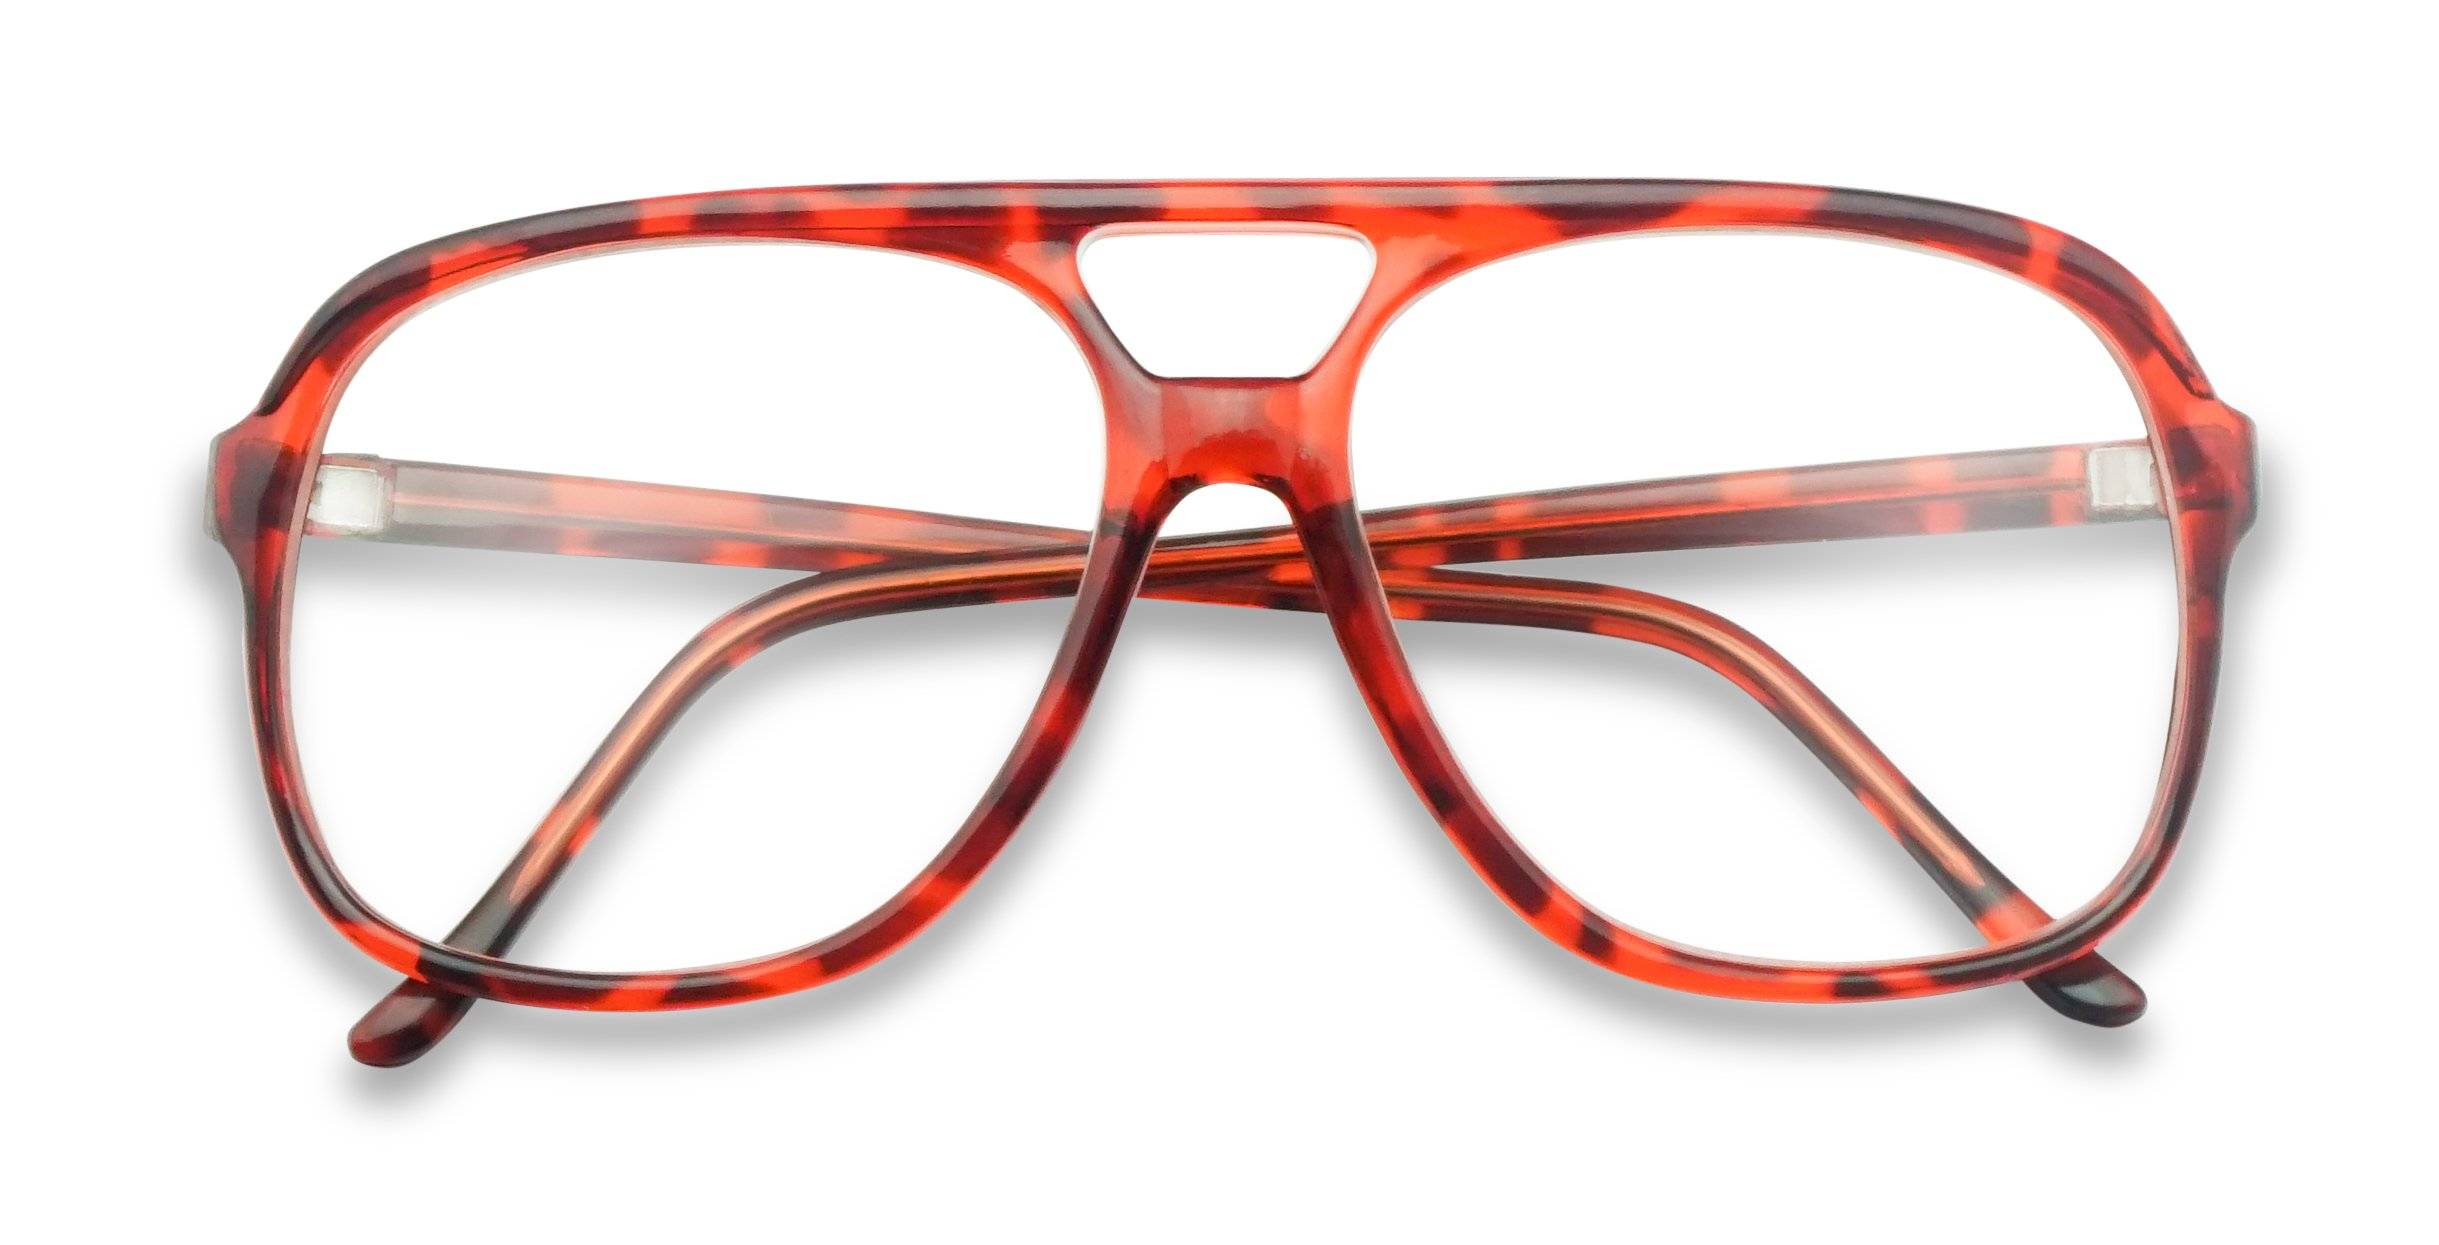 0b2a15cbb Galleon - SunglassUP - XL Oversized Horn Frame Optical Rx +1.00 Thru +3.50  Reading Glasses (Red Tortoise (58mm), 2.75)